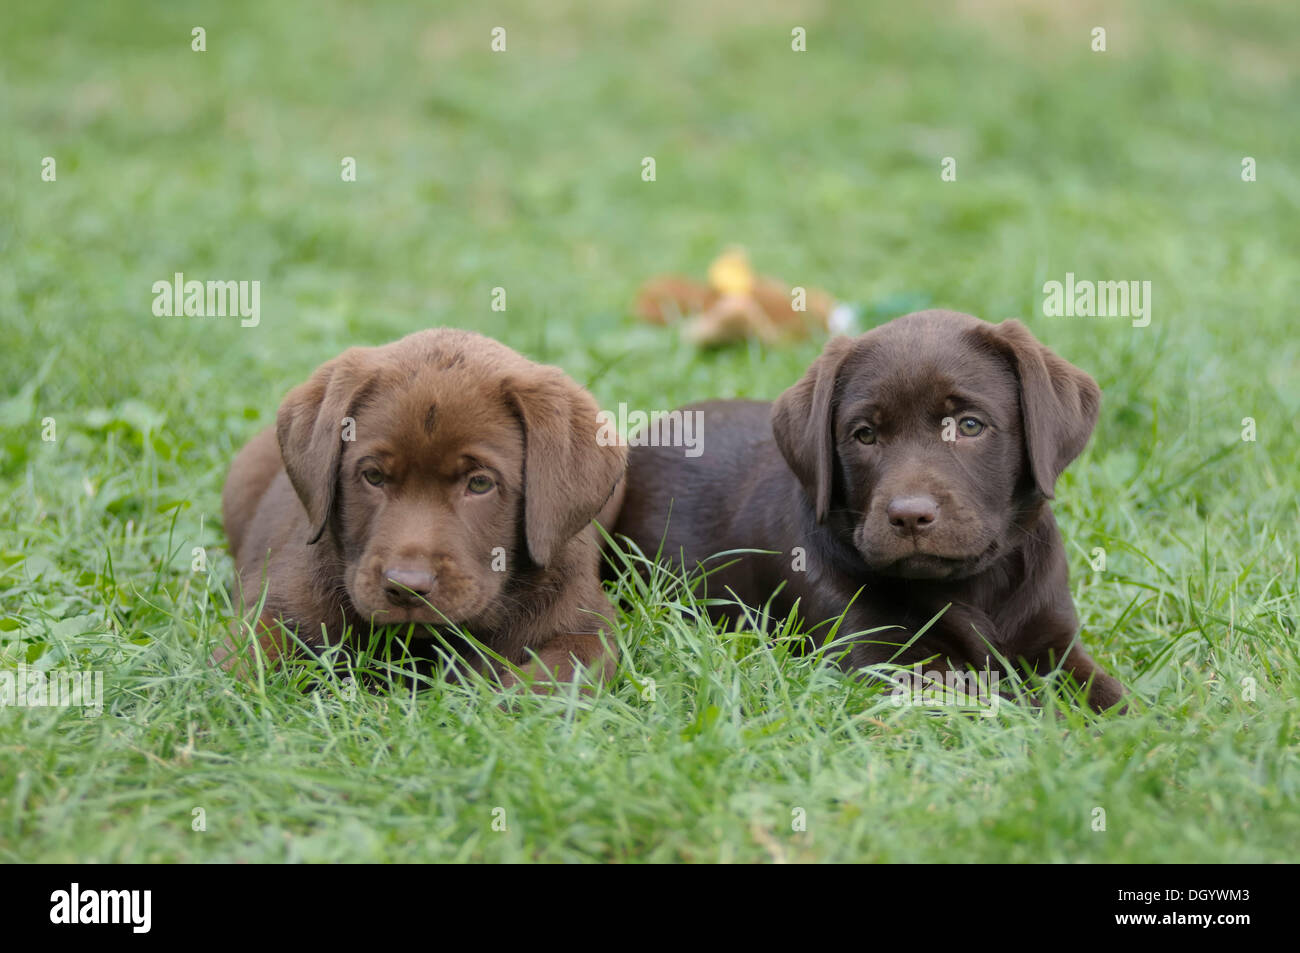 two labrador retrievers puppies lying in a meadow next to each